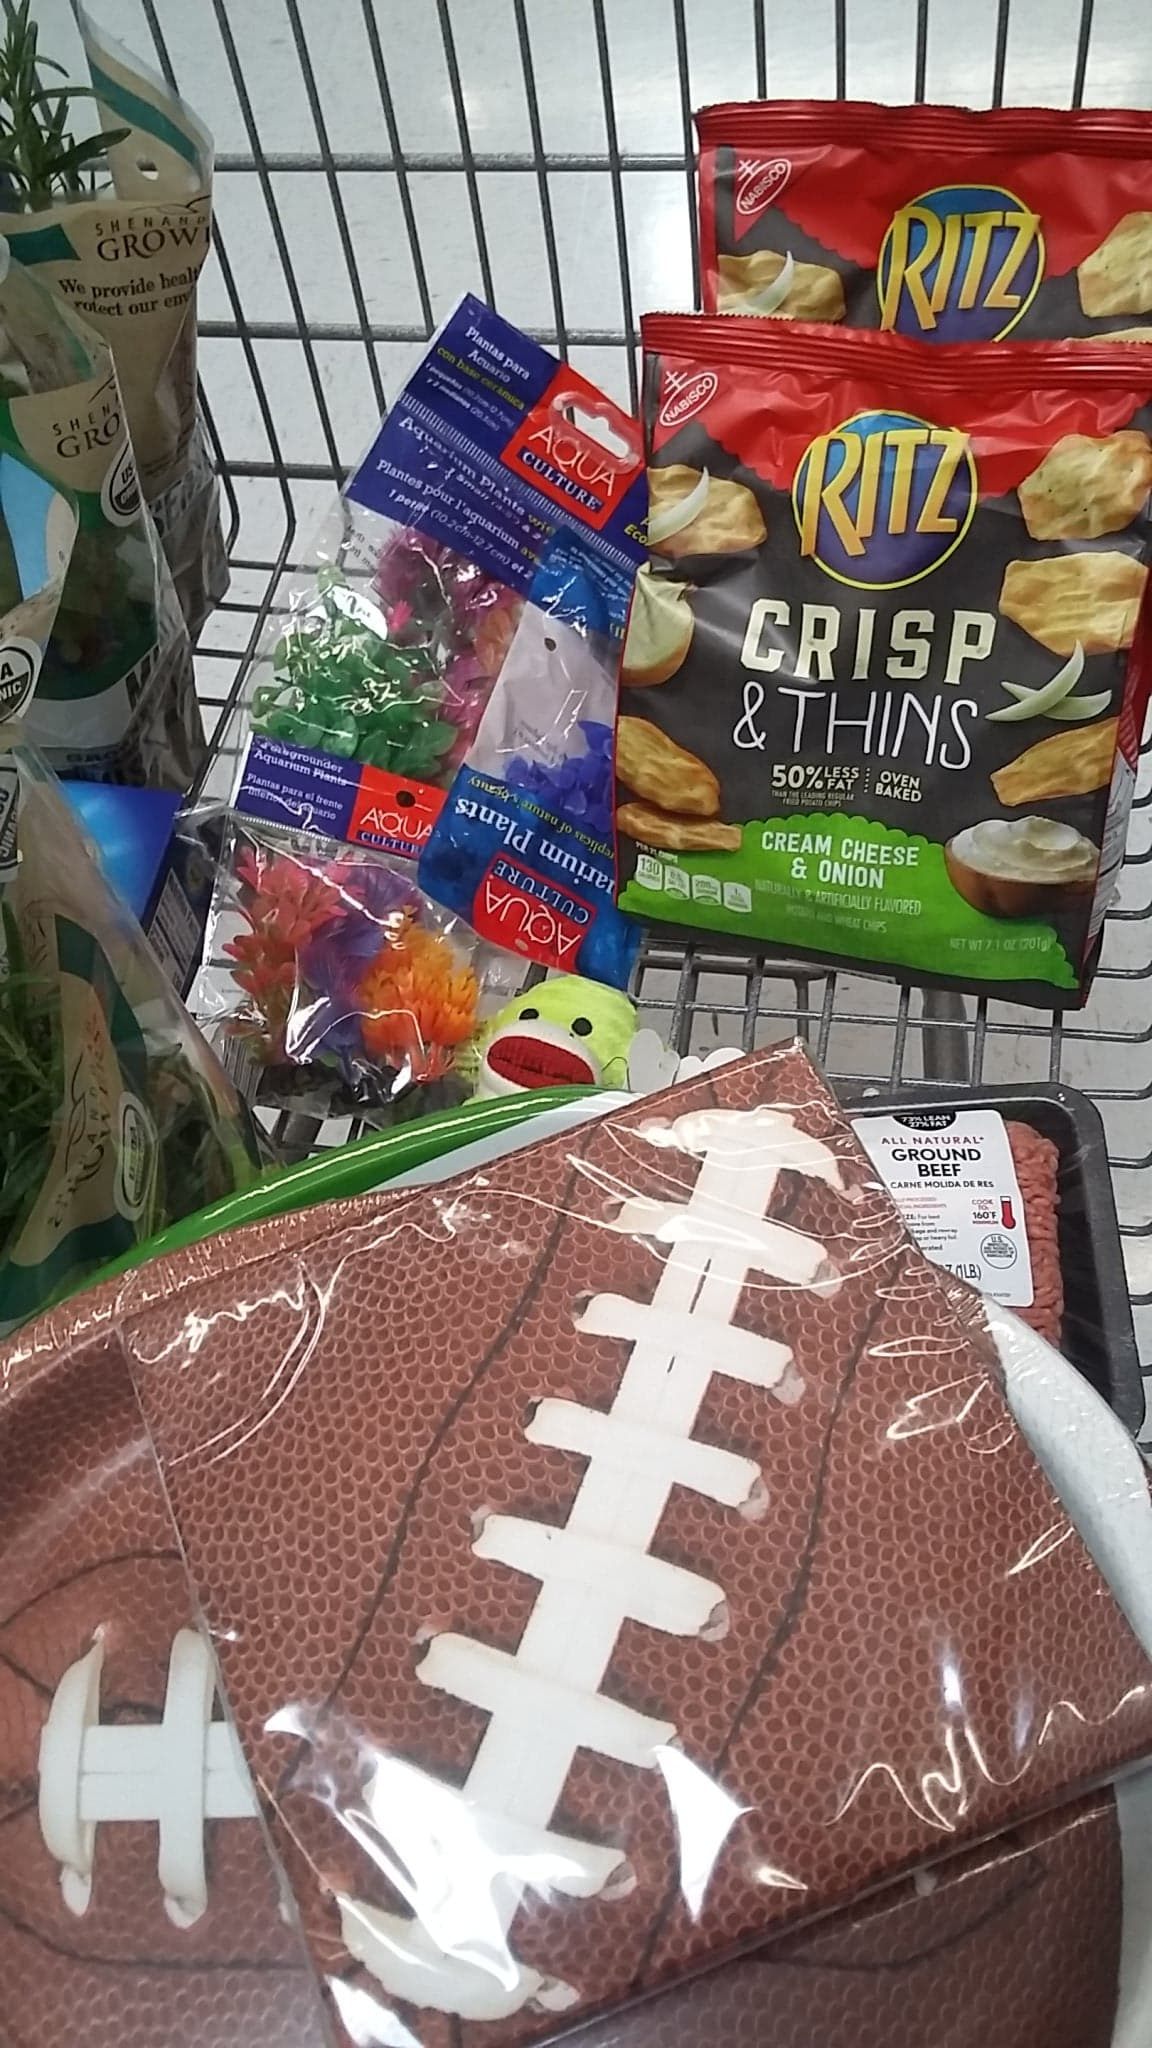 Win Six $50 Walmart Gift Cards & one$200 Walmart Gift Card Plus Ibotta Savings RITZ Crisp & Thins #RITZBlitz, #IC, #ad